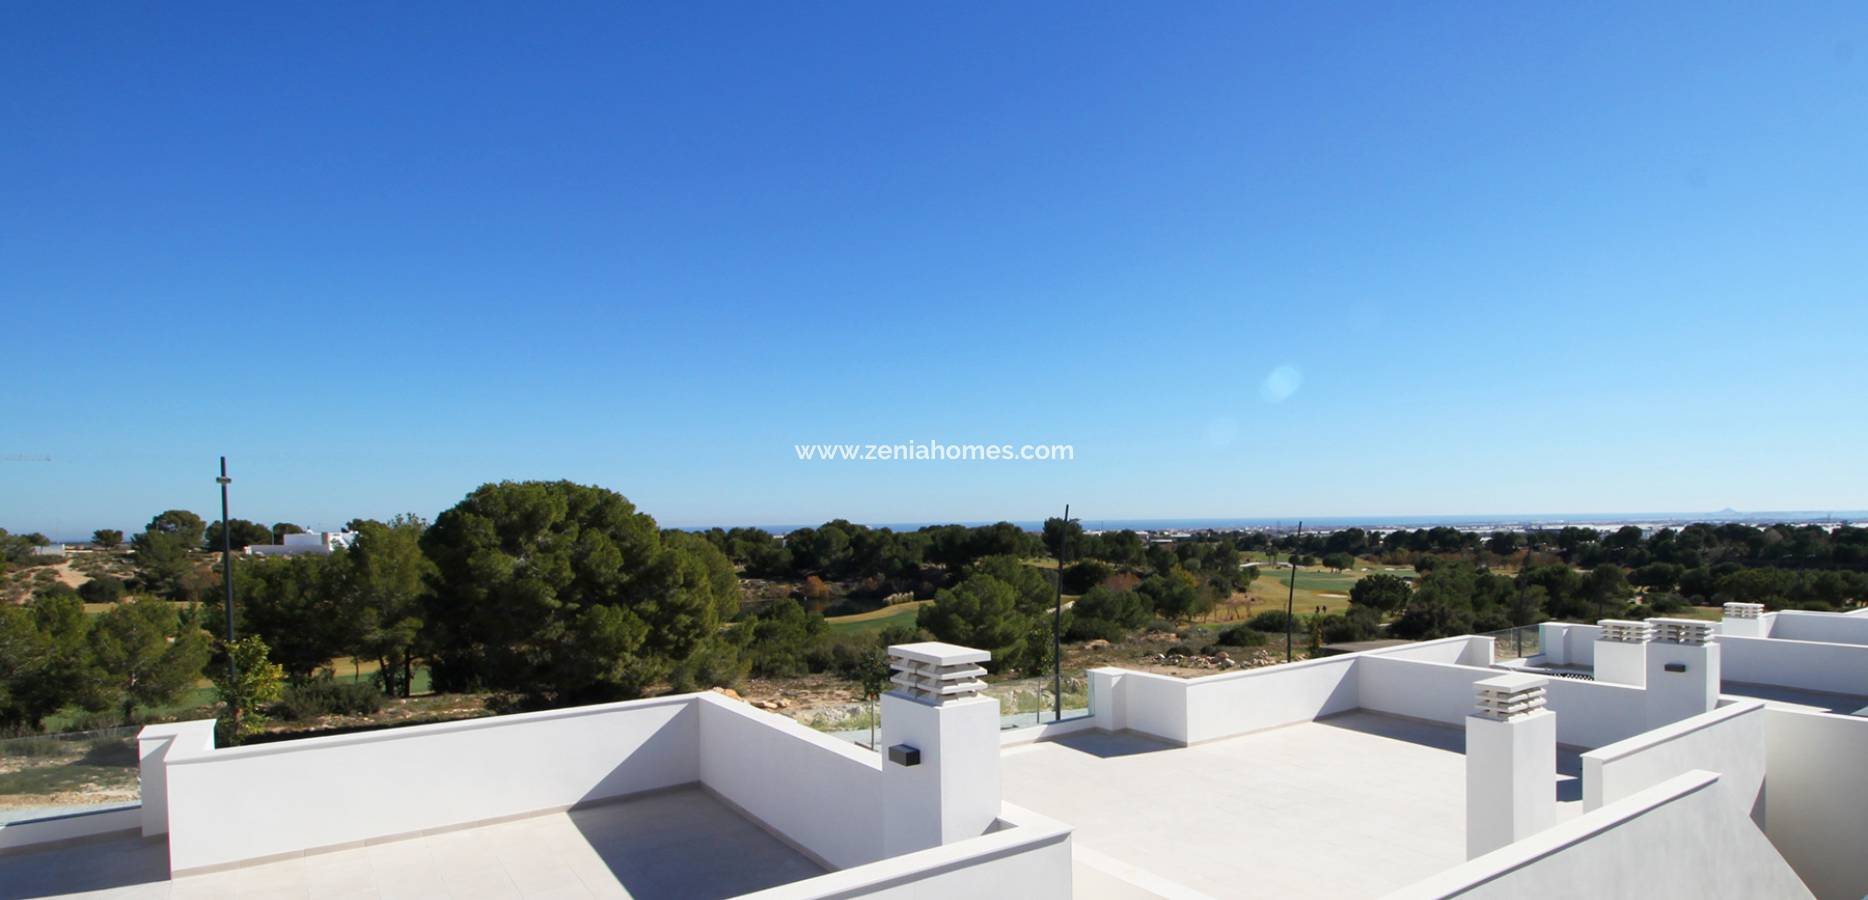 New Build - Parhus villa - Pilar de la Horadada